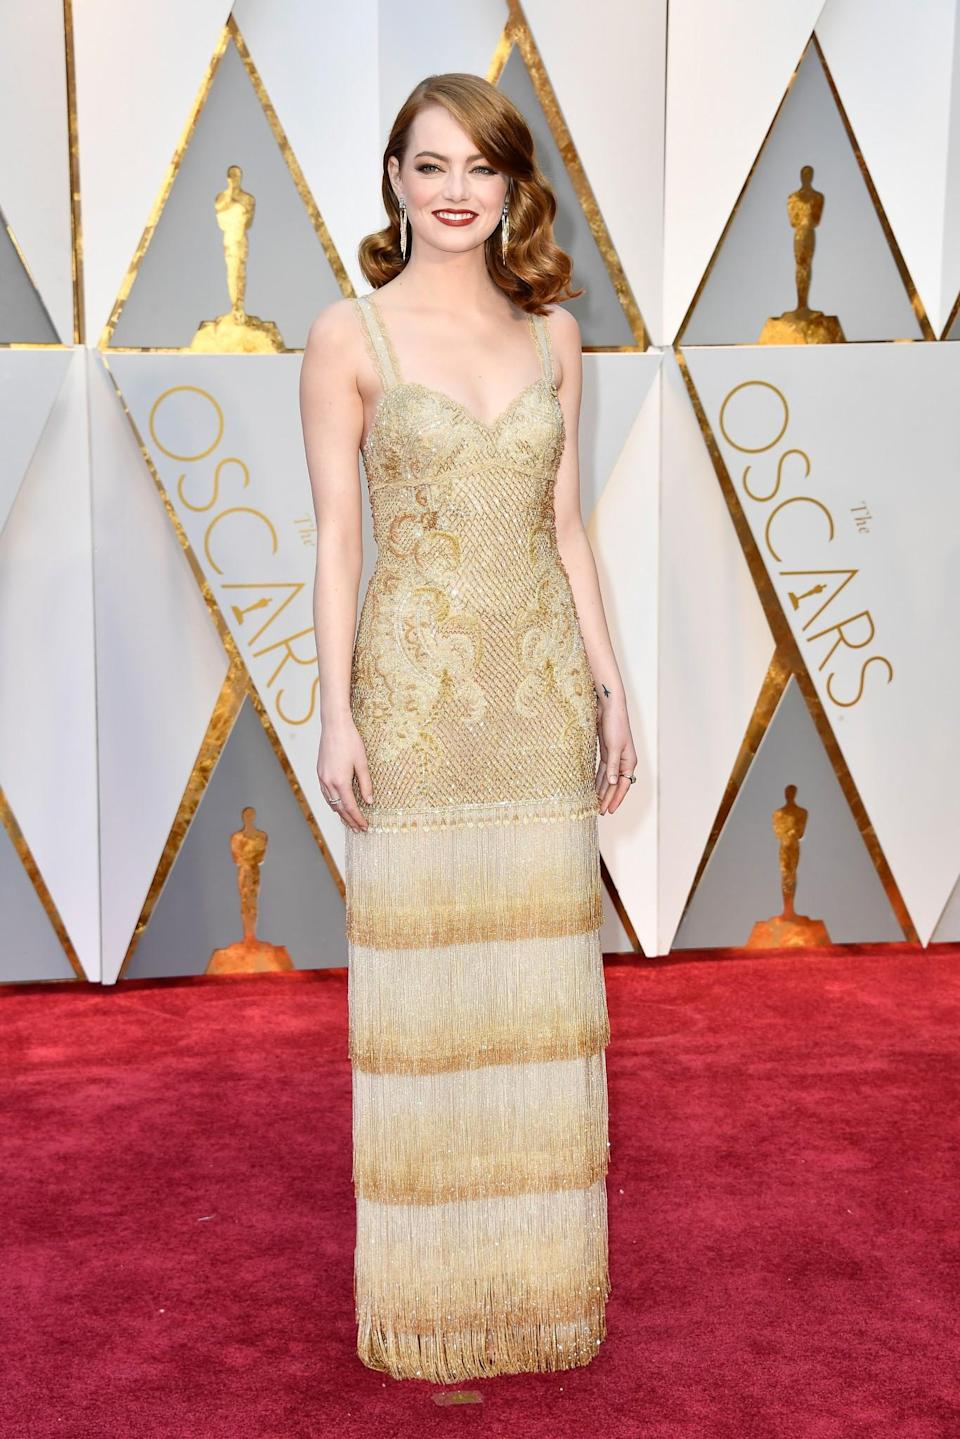 """<p>Oscar winner Emma Stone had that perfect sheen courtesy of <a rel=""""nofollow noopener"""" href=""""http://www.barneys.com/product/sisley-paris-white-ginger-contouring-oil-for-legs-505083053.html"""" target=""""_blank"""" data-ylk=""""slk:Sisley's Ginger Contouring oil"""" class=""""link rapid-noclick-resp"""">Sisley's Ginger Contouring oil</a>, applied by makeup artist Rachel Goodwin. (Photo: Getty Images) </p>"""